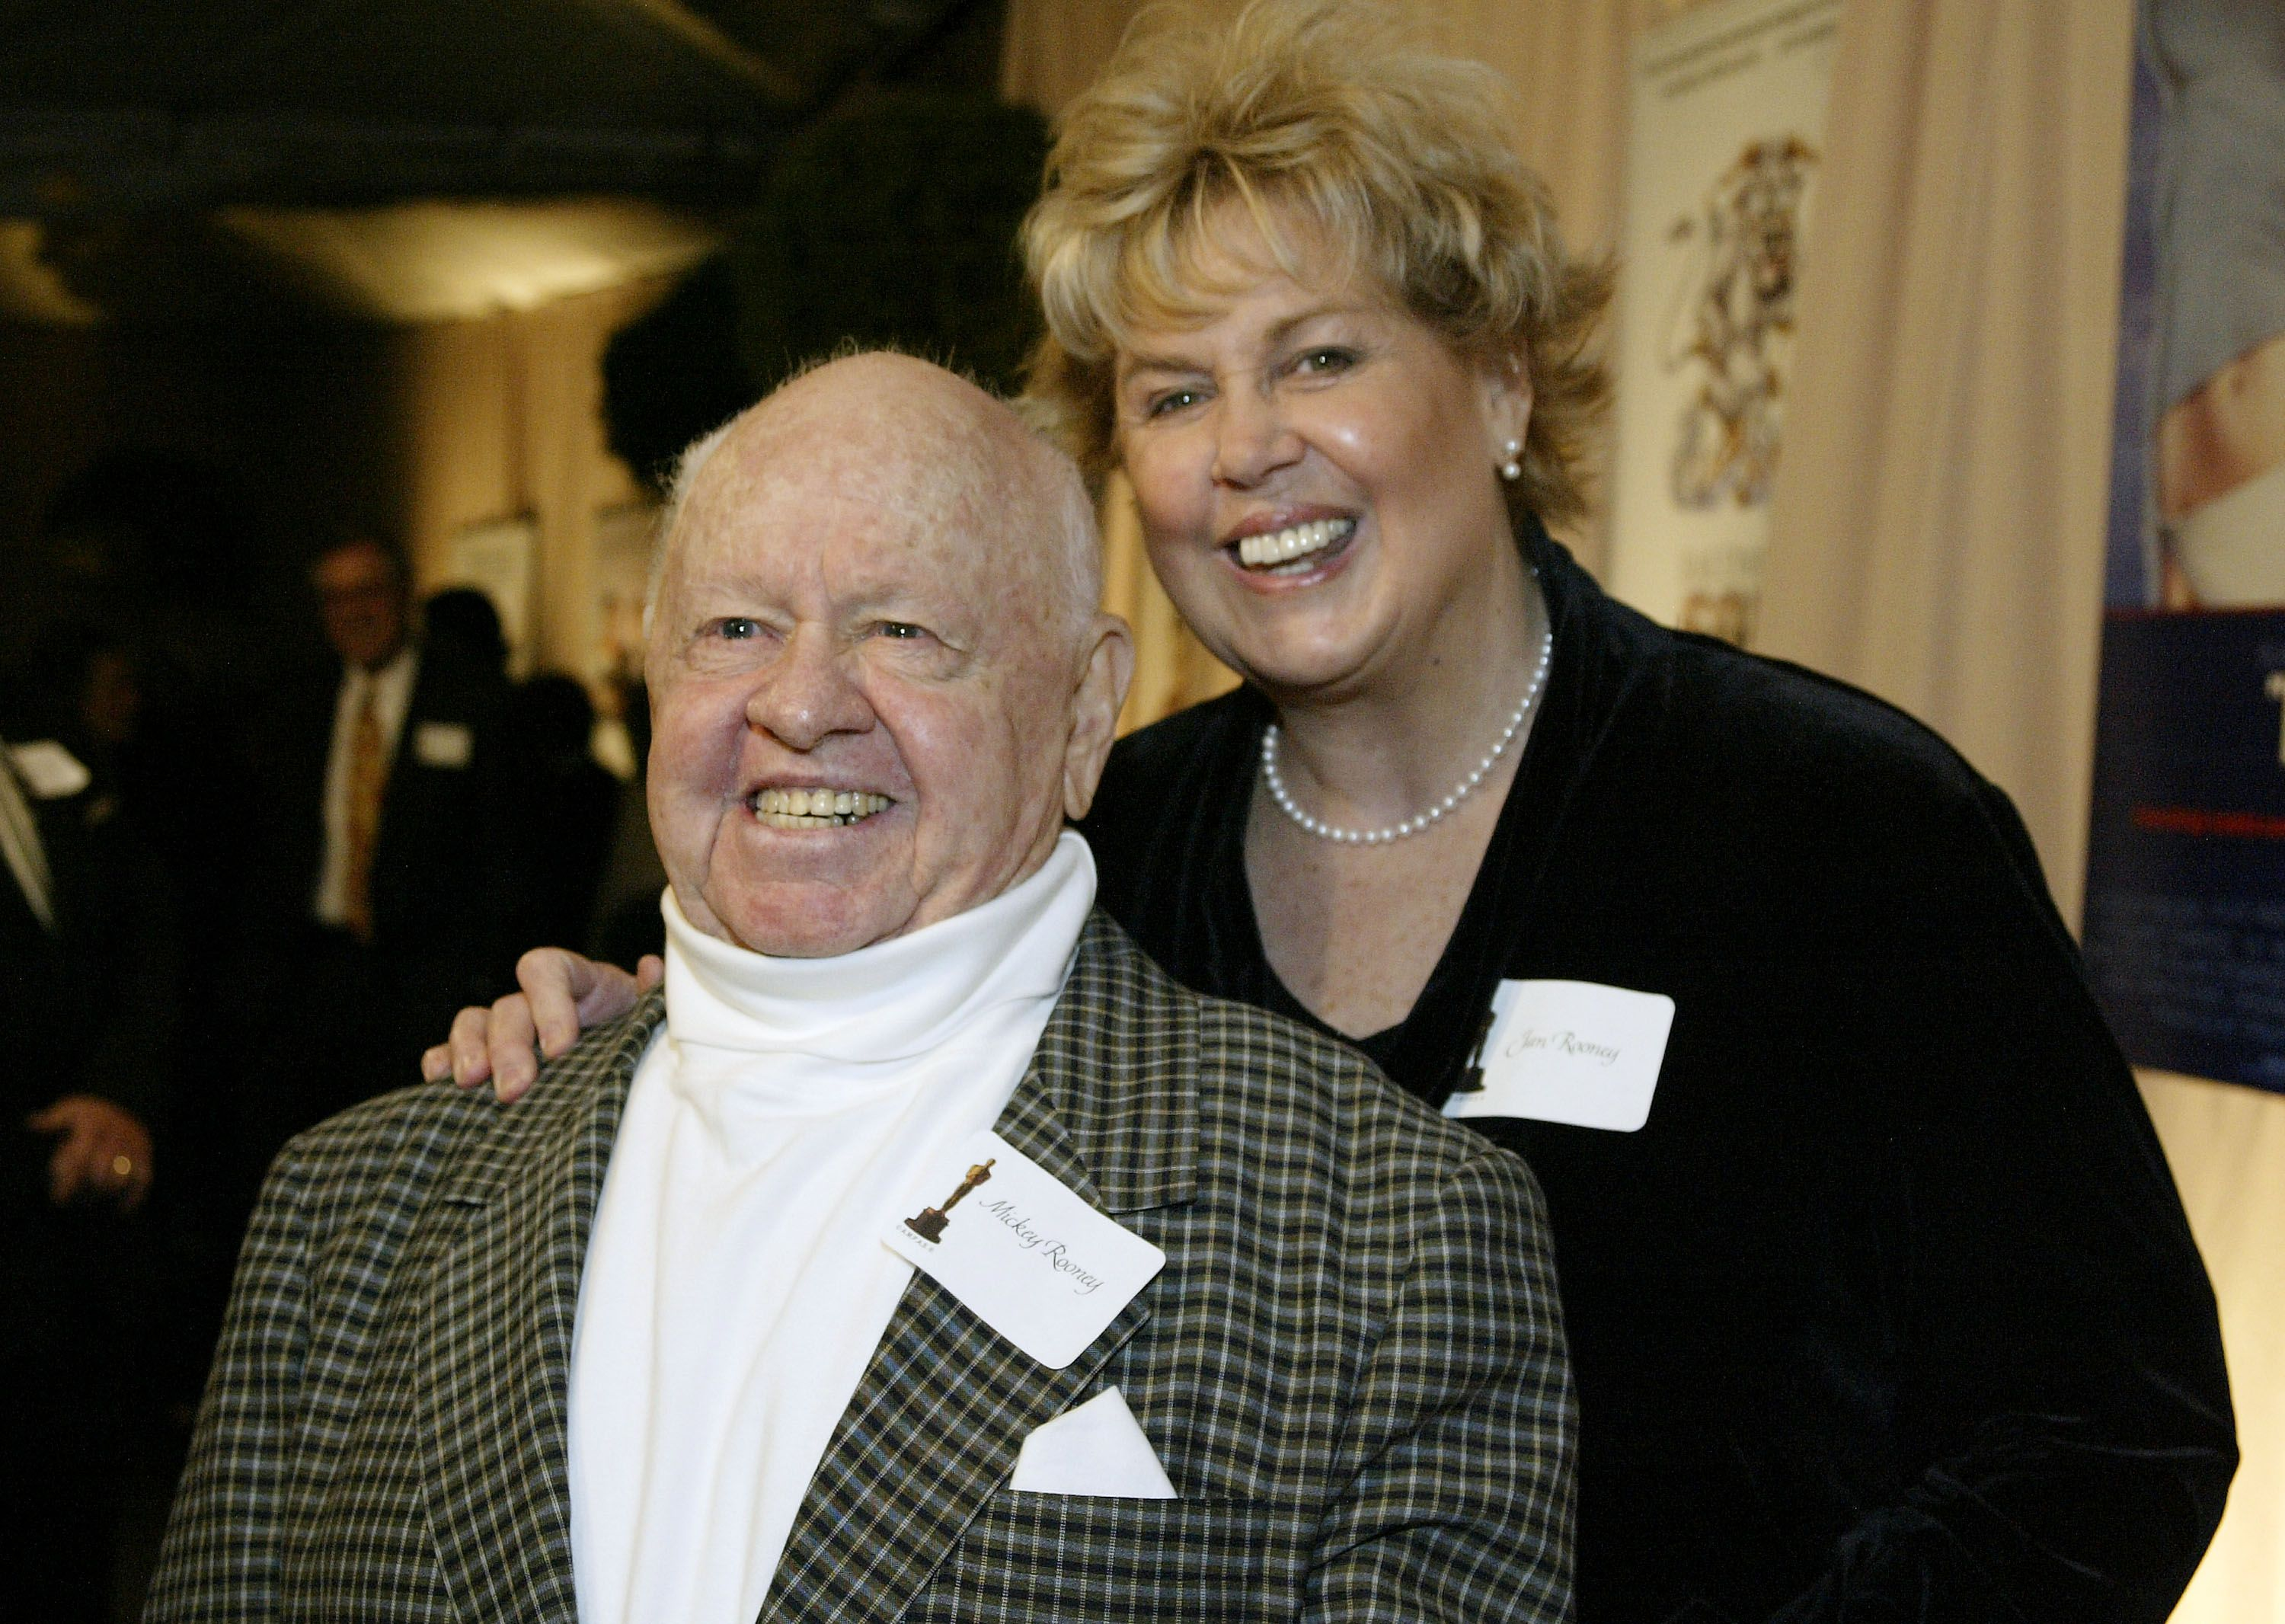 Mickey and wife Jan Rooney at a reception in honor of director Blake Edwards on February 26, 2004, at The Annex in Hollywood, California | Photo: Doug Benc/Getty Images